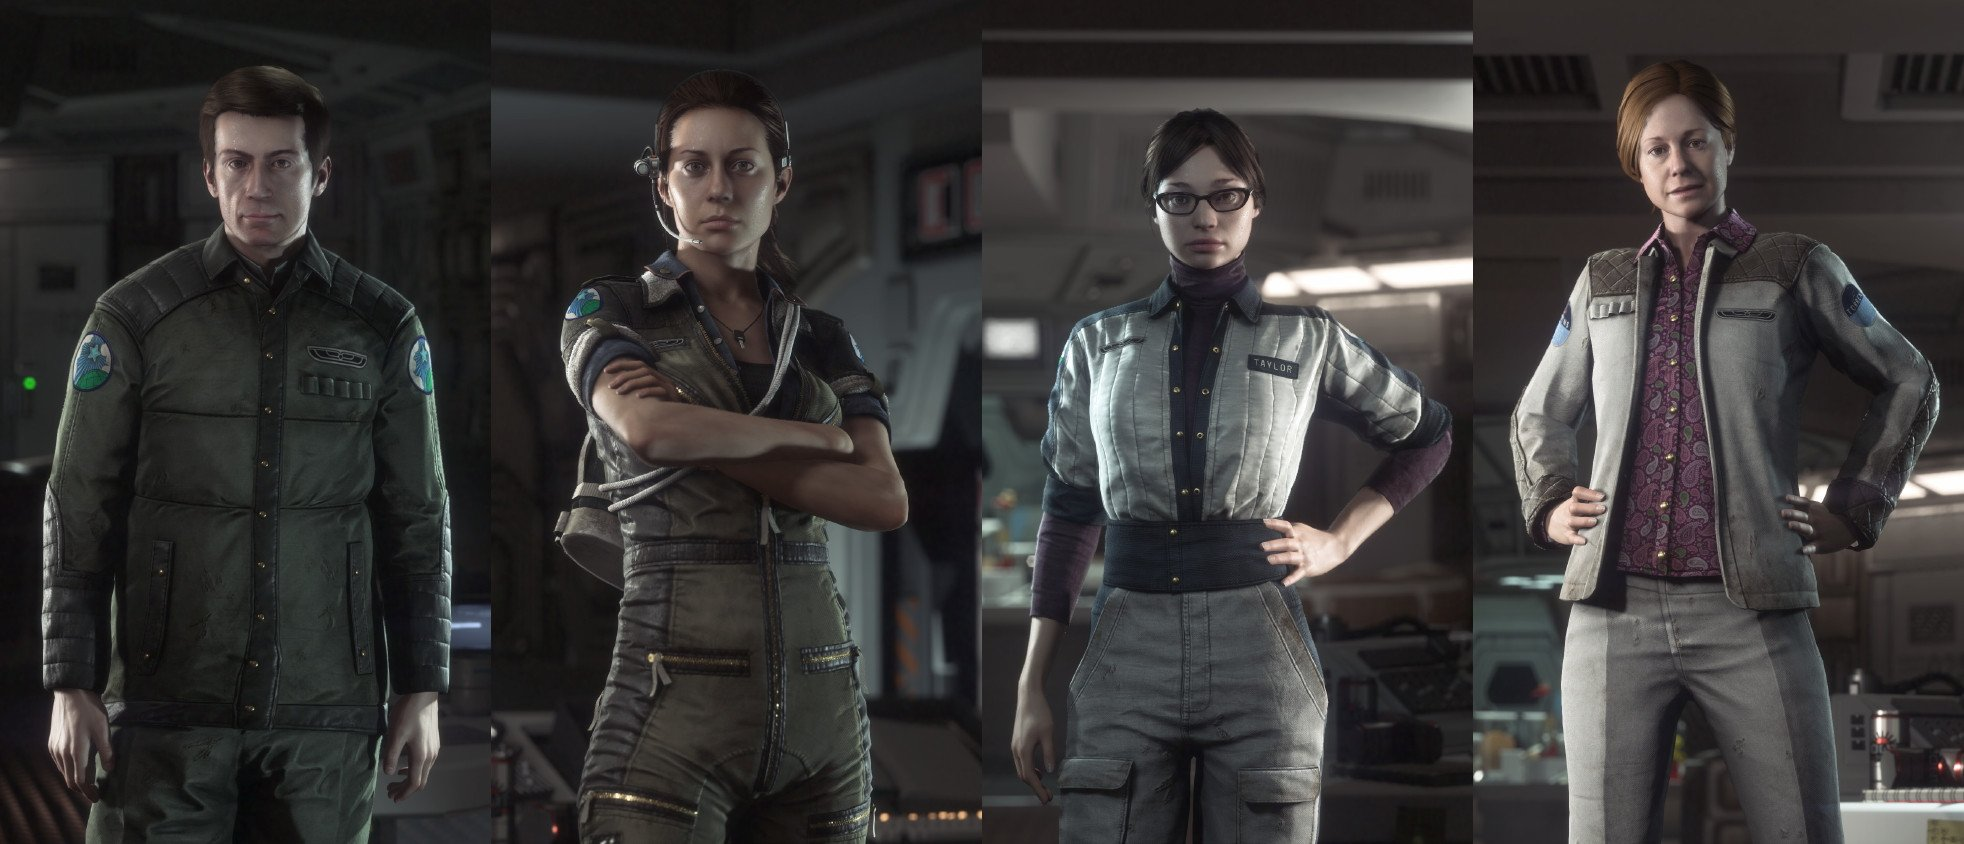 alien_isolation_characters.jpg